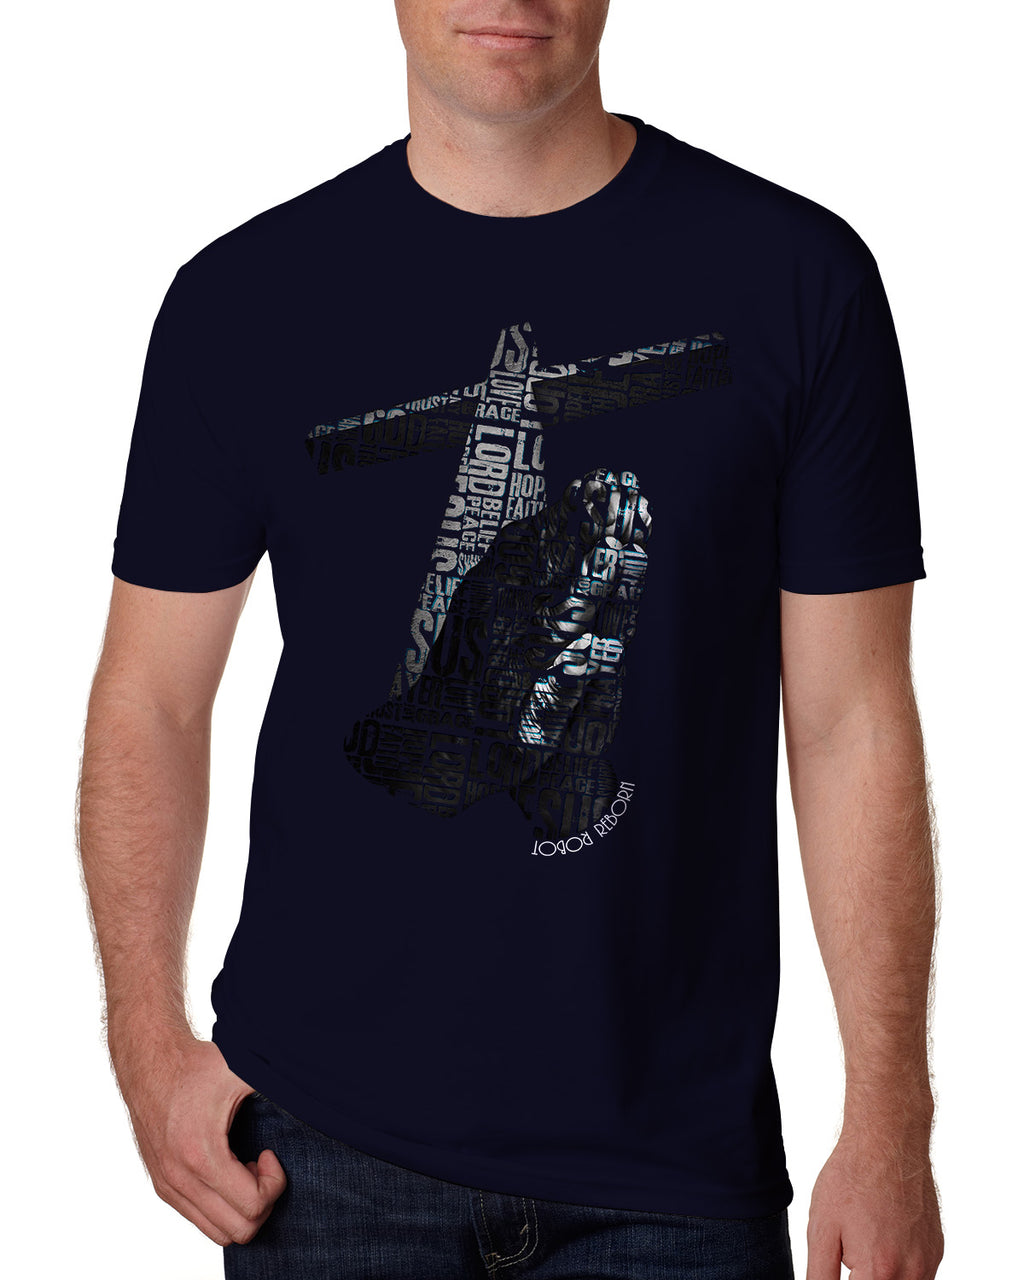 Prayer Men's T-shirt